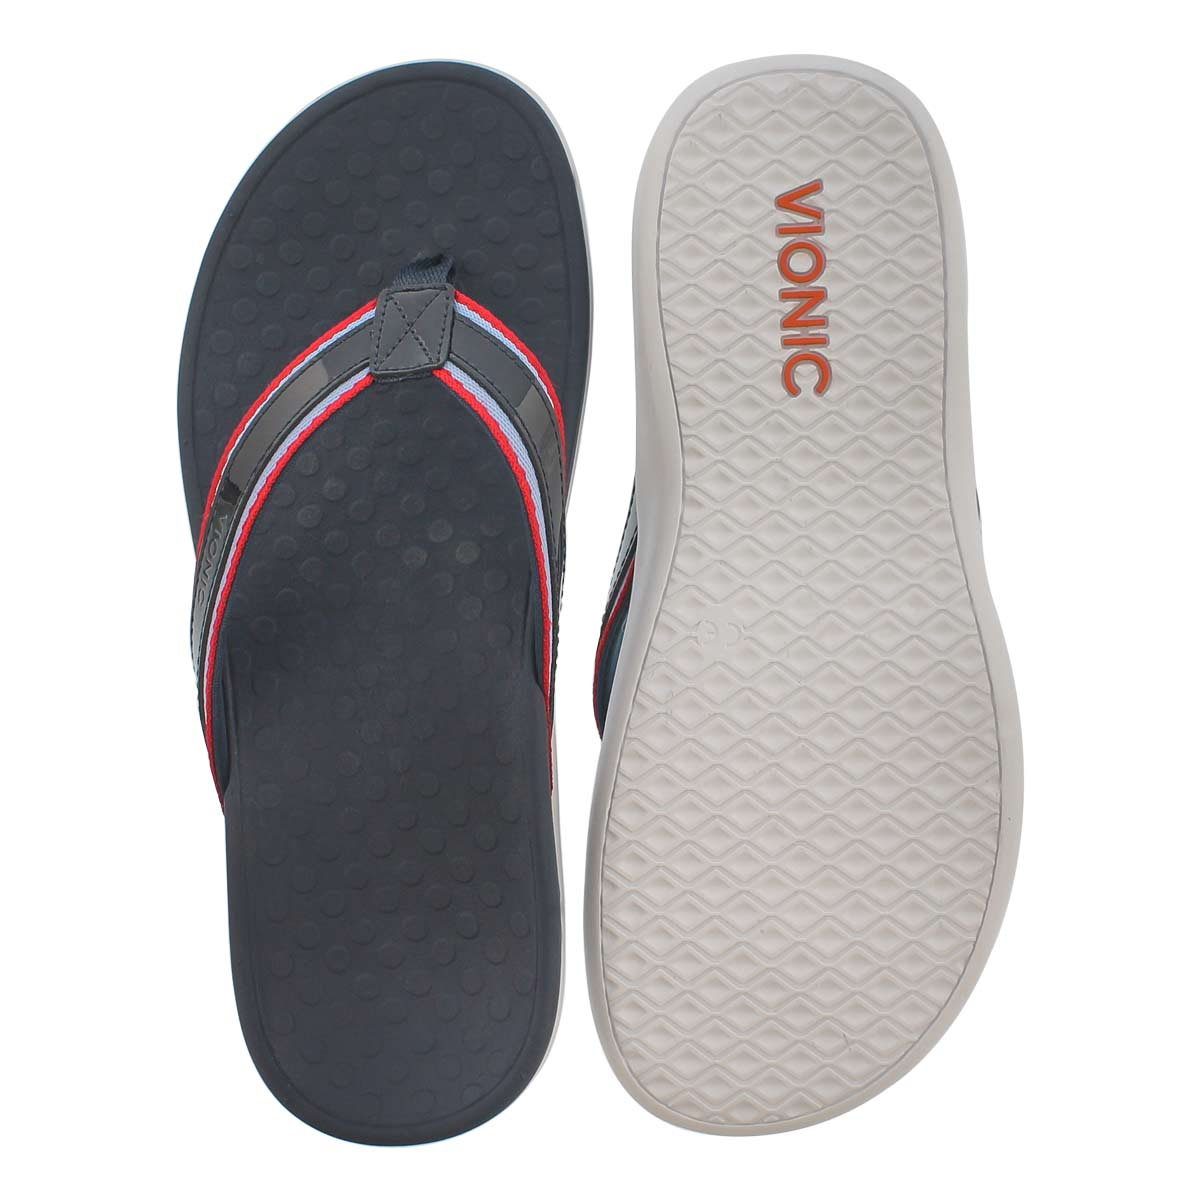 Lds TideSport nvy arch support thng sndl